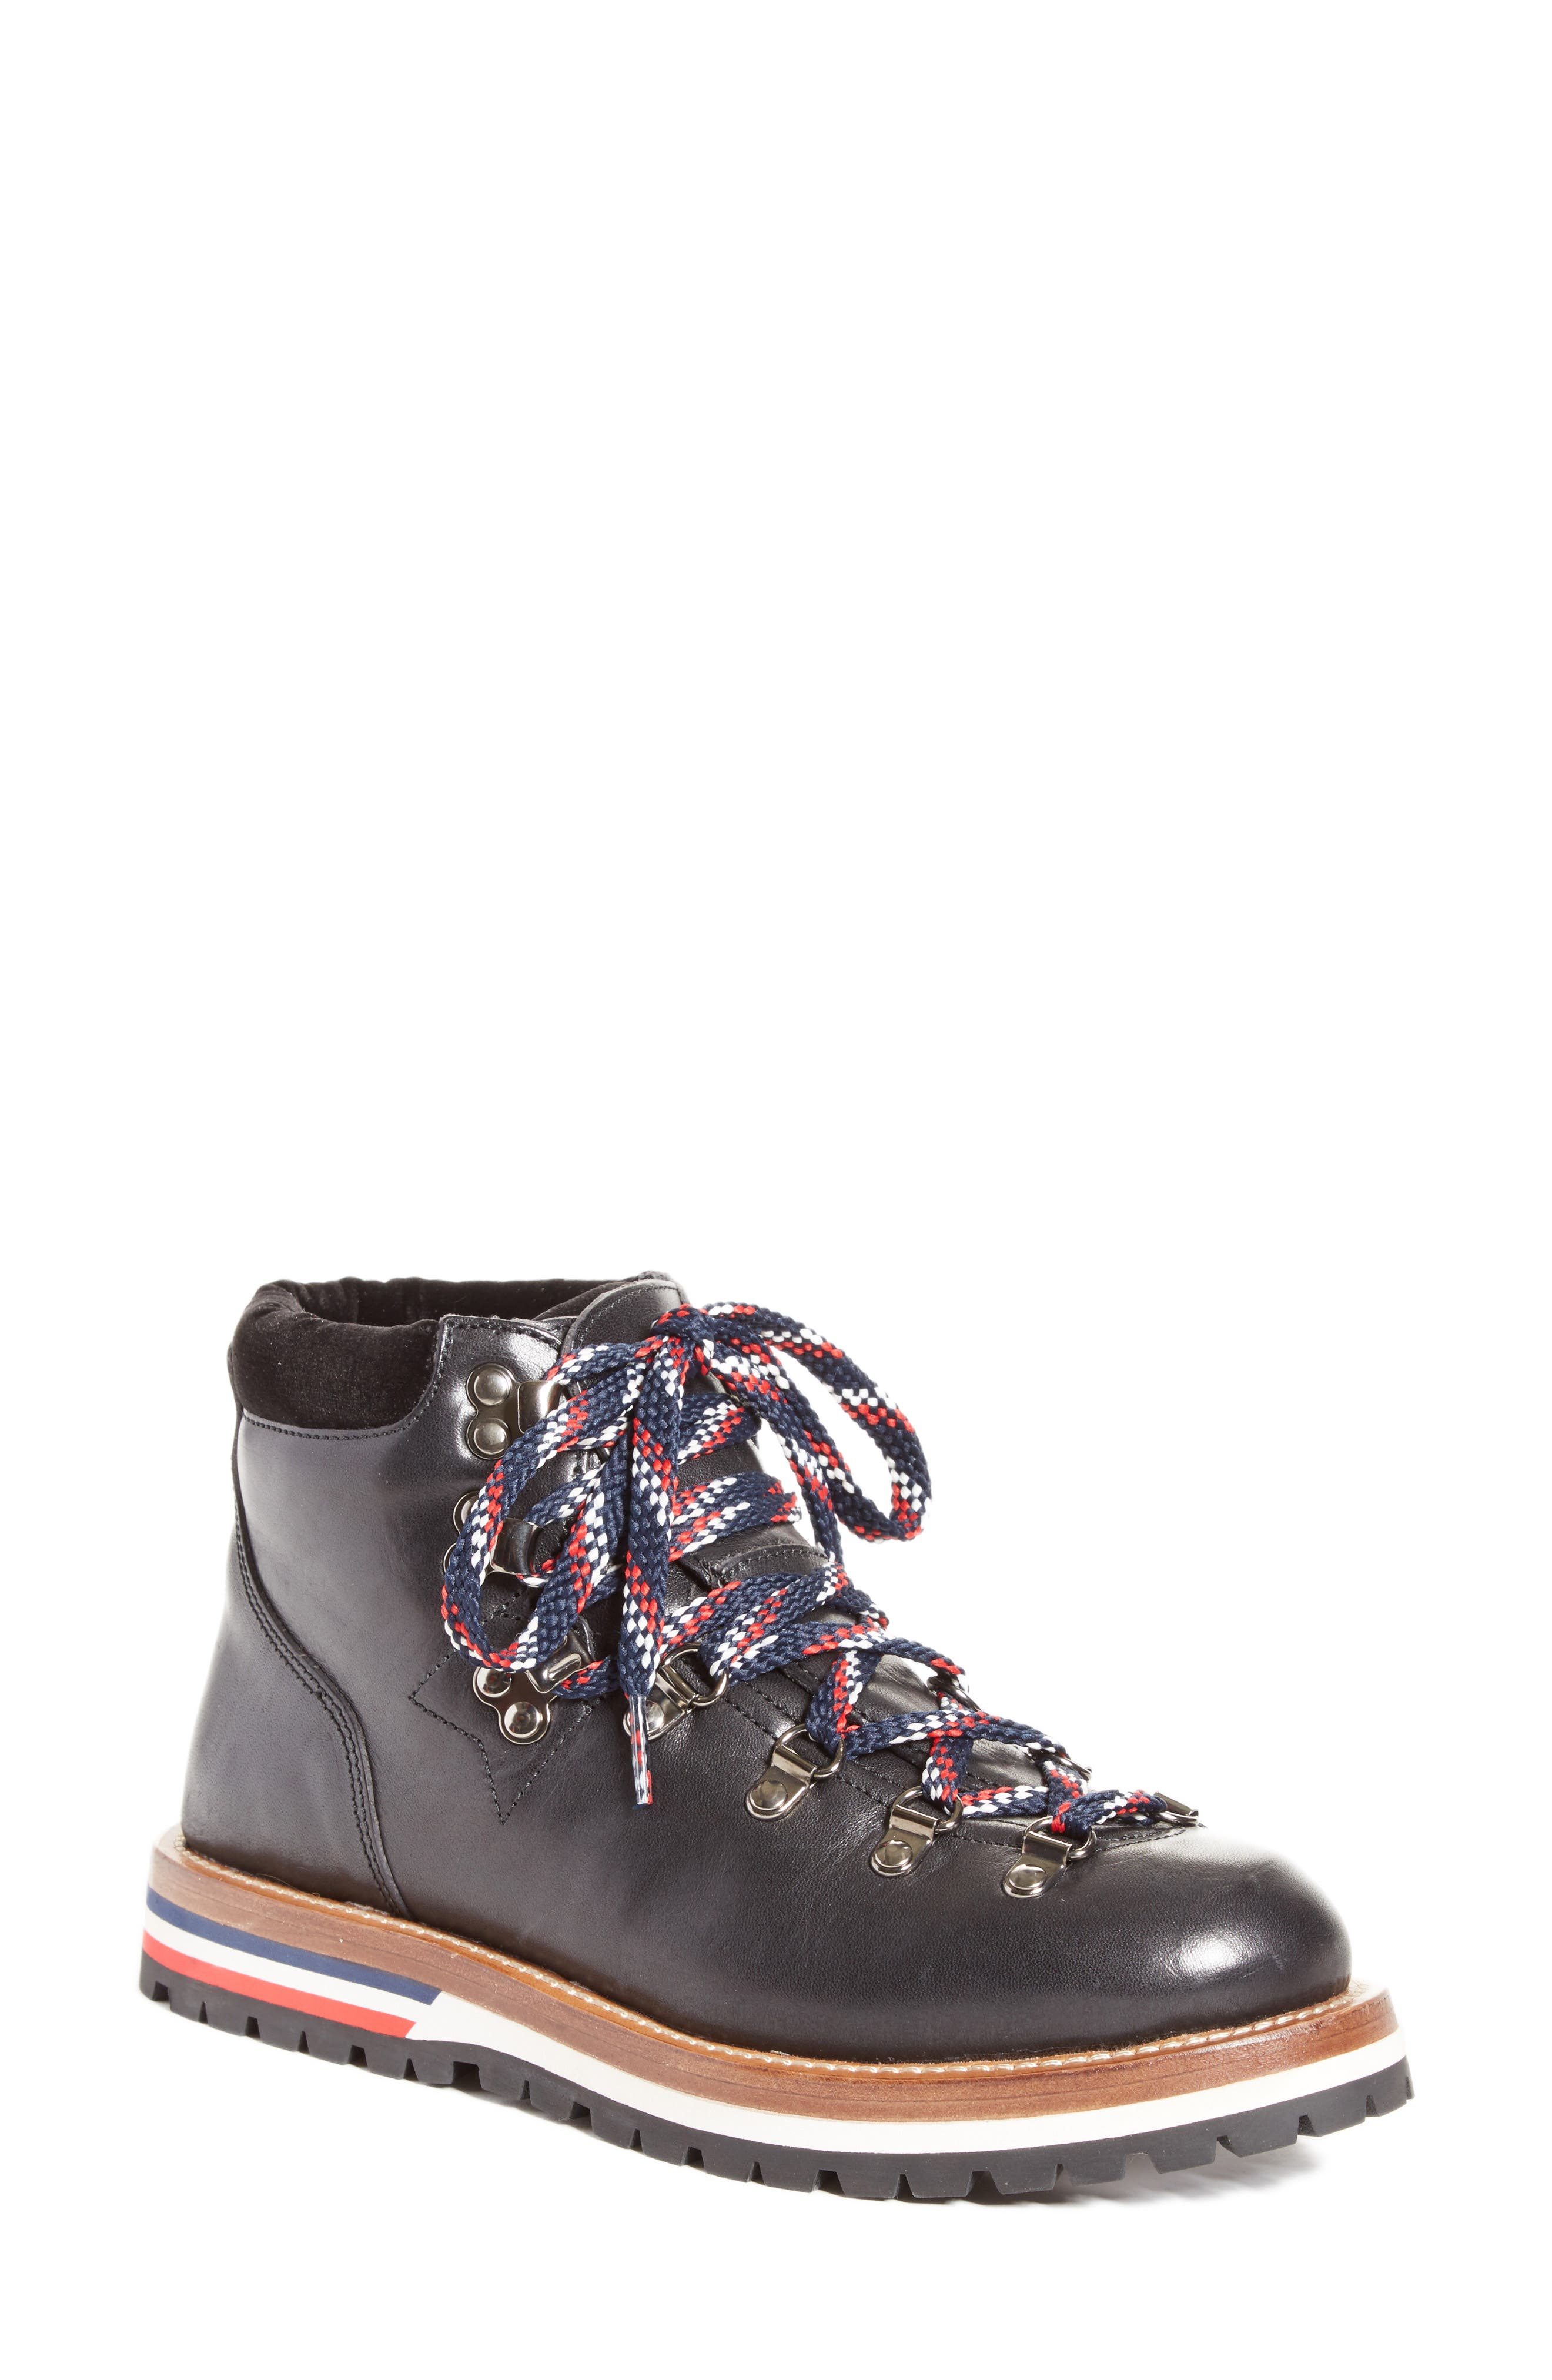 Alternate Image 1 Selected - Moncler Blanche Lace-up Boot (Women)